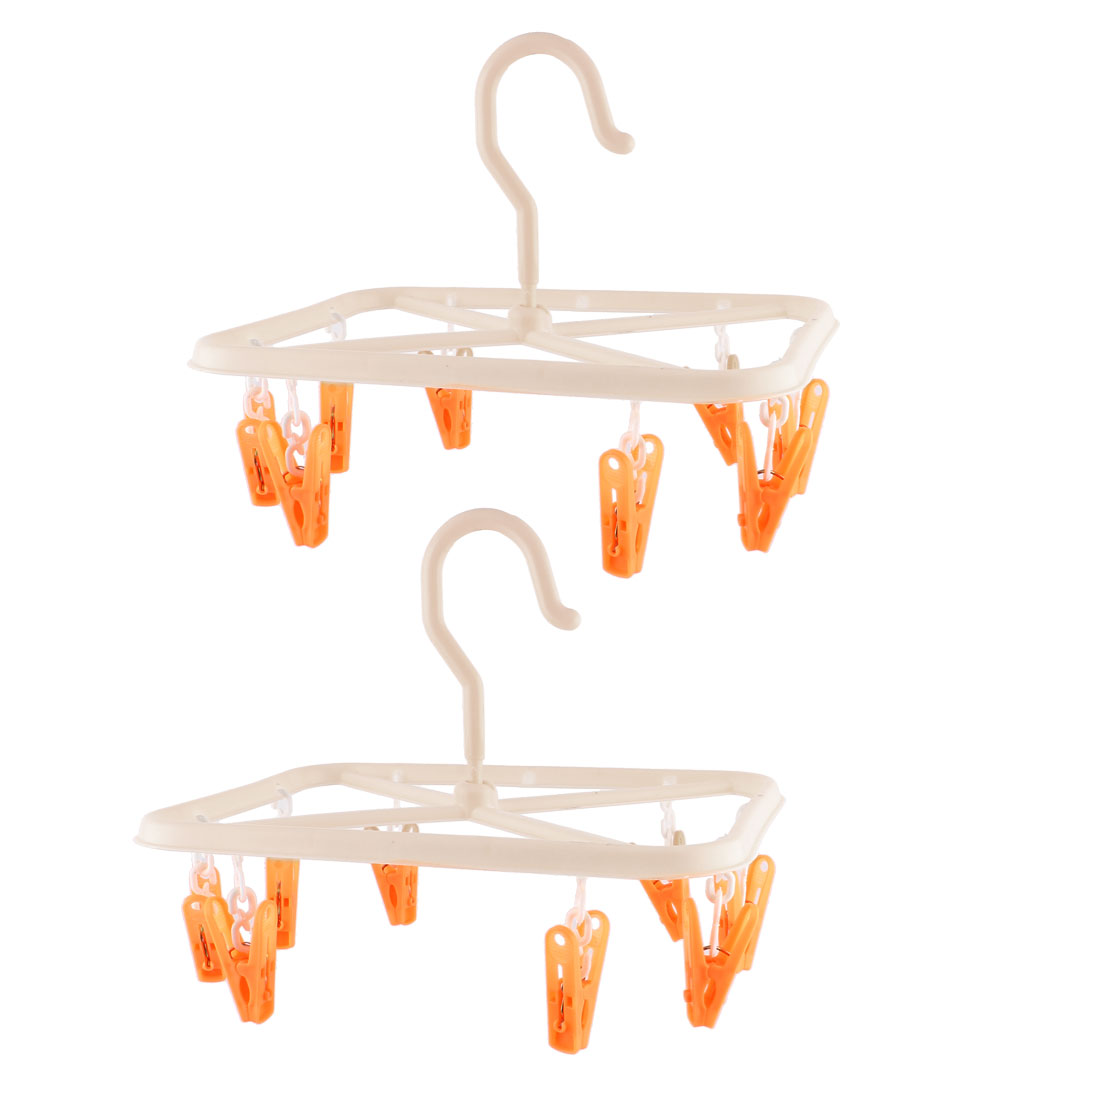 8 Pegs Rack Laundry Clothes Underwear Socks Hanger Hanging Dryer Orange 2PCS